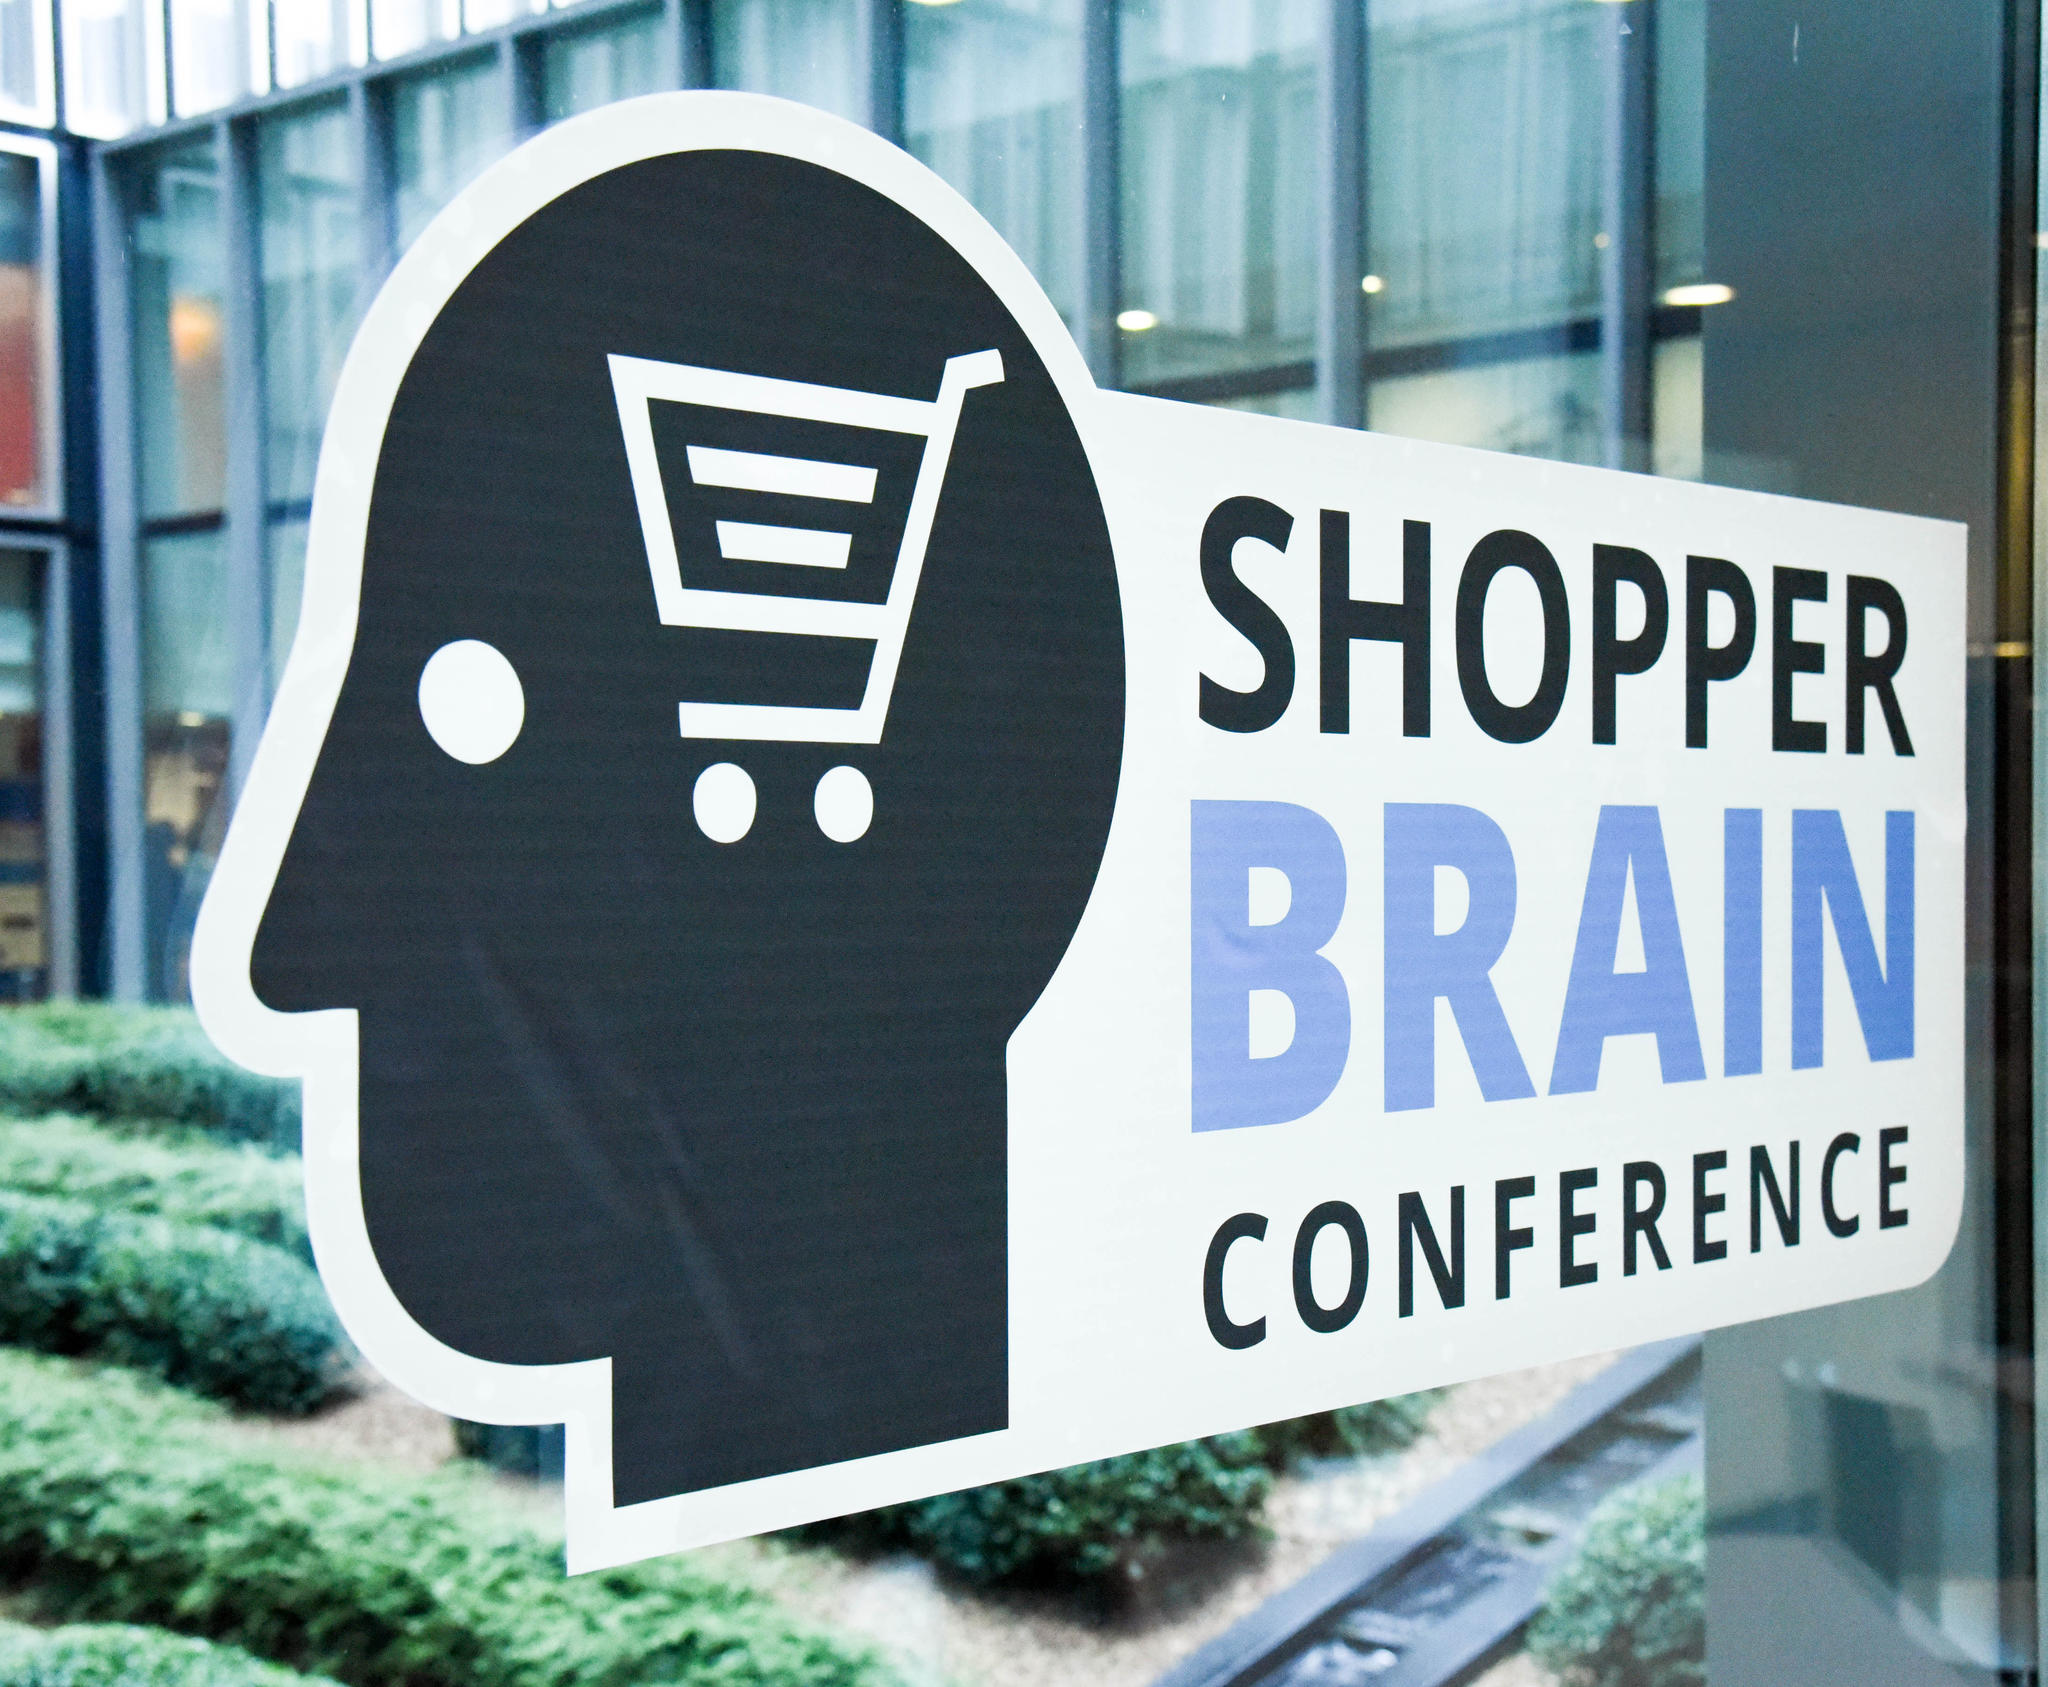 https://i2.wp.com/media.voog.com/0000/0038/5628/photos/shopperbrainlogo-window_huge.jpg